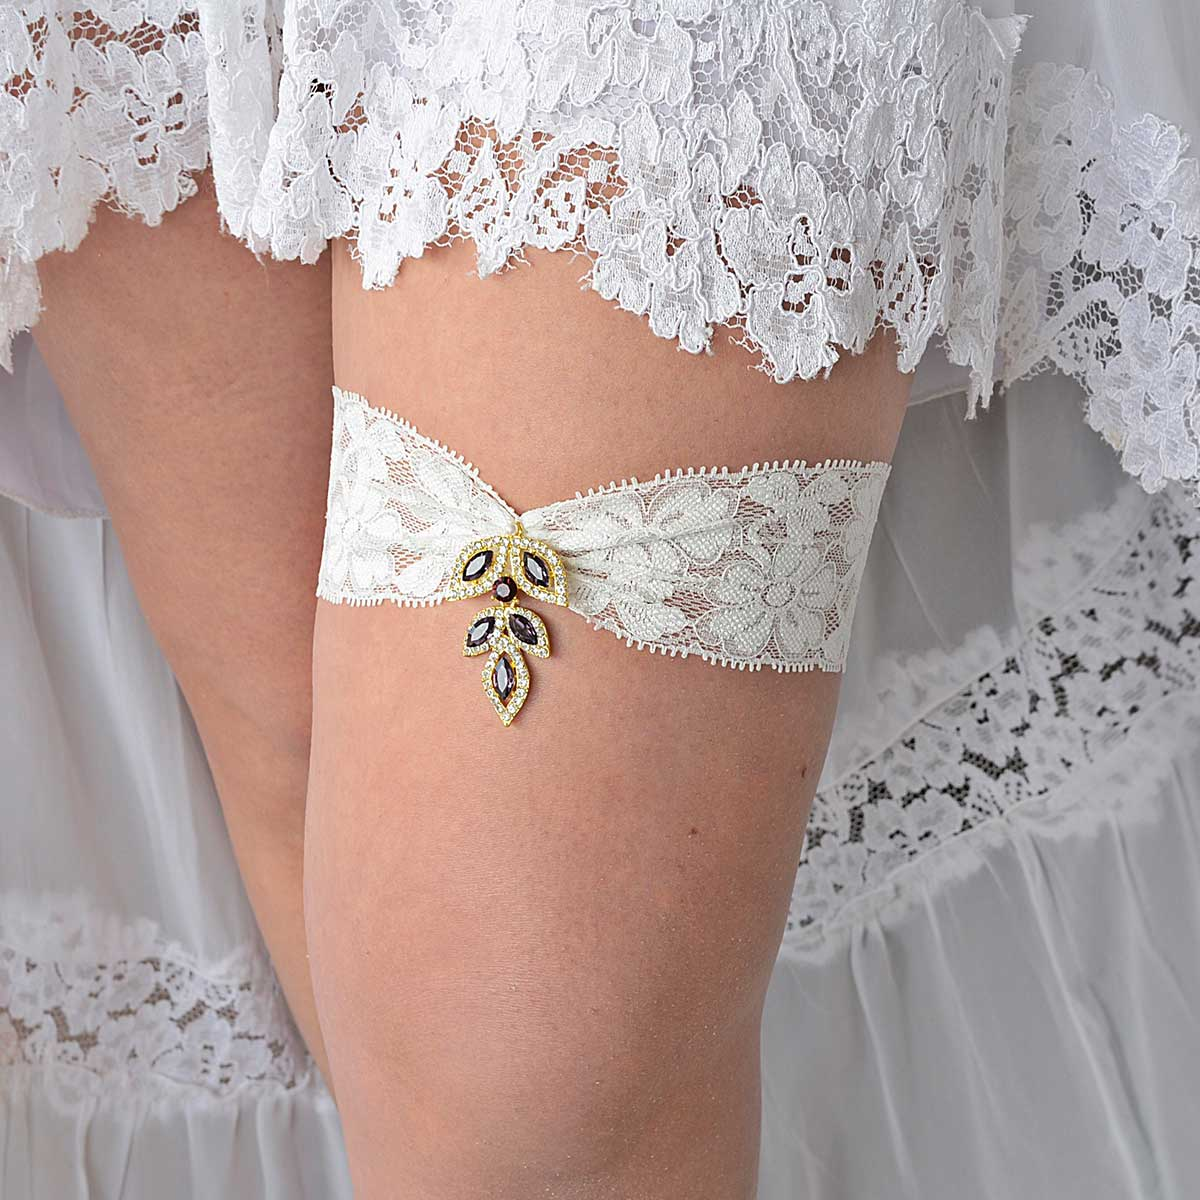 Clear & Purple Rhinestone Gold Bridal Garter With Ivory Lace - Wedding Garter - SuzannaM Designs